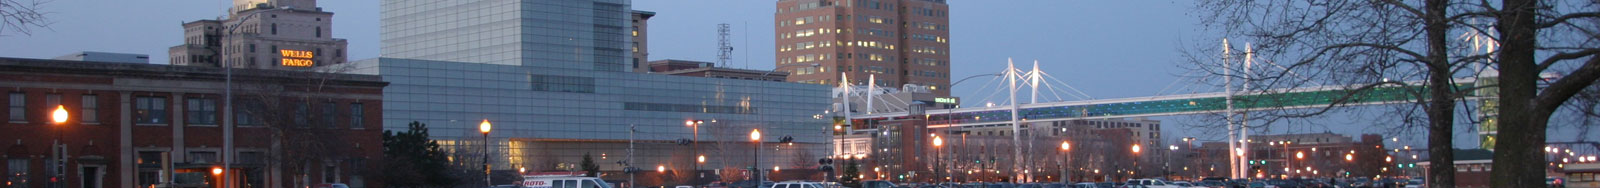 Panoramic shot of downtown Davenport, IA